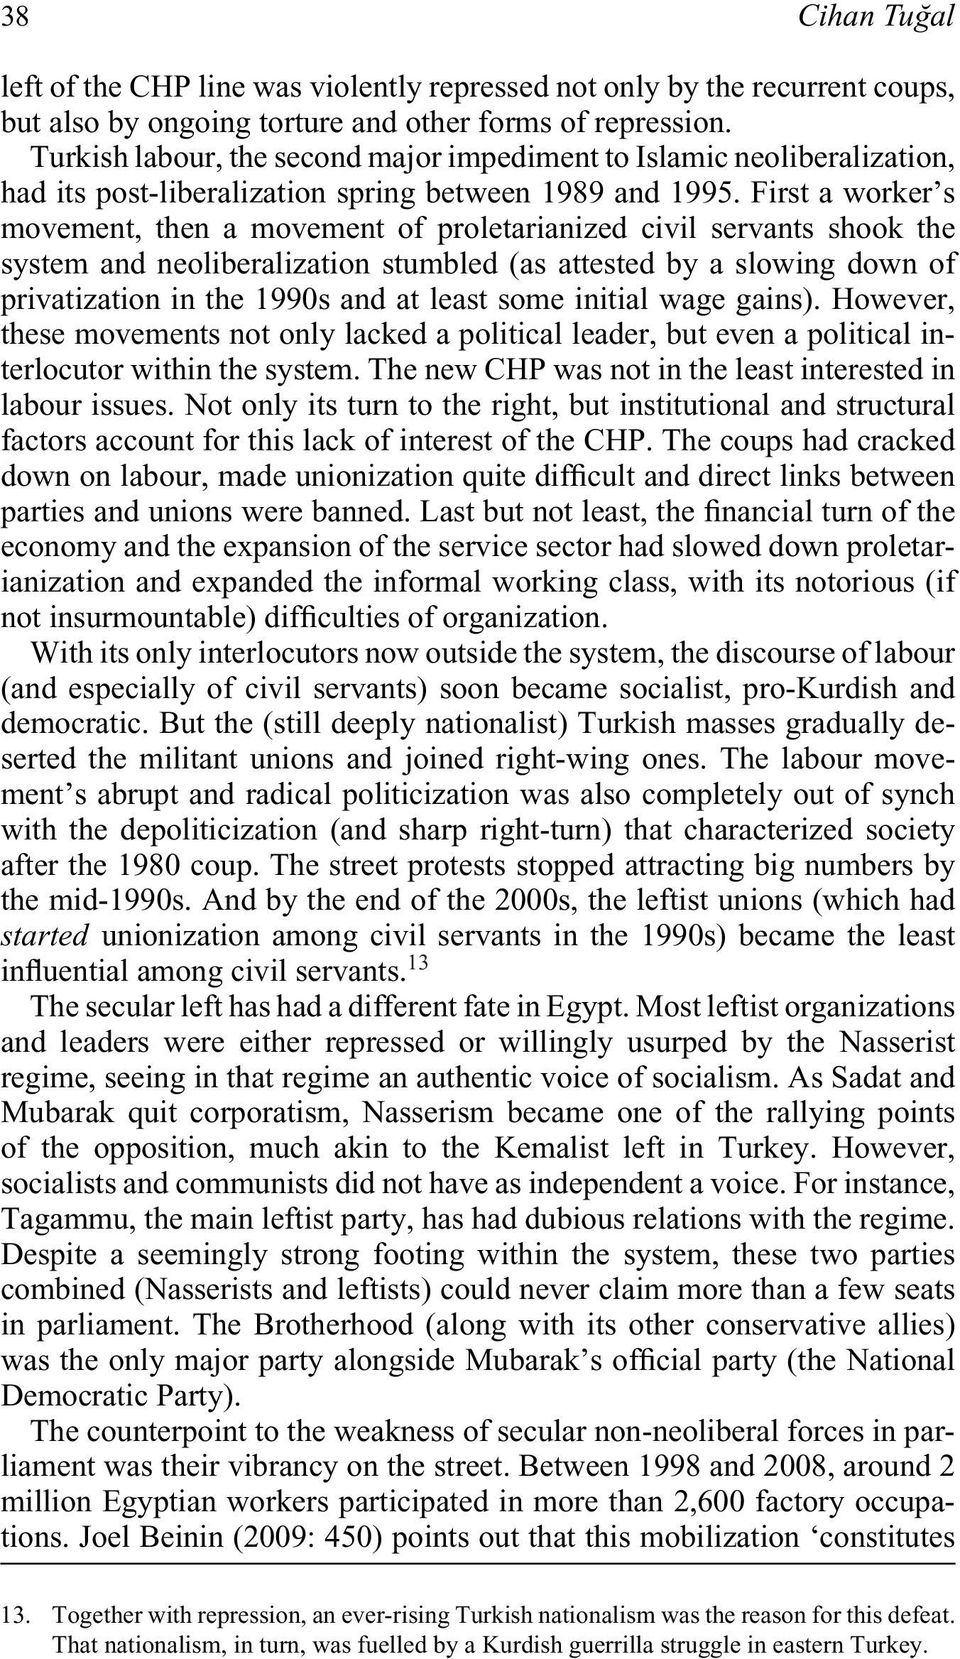 First a worker s movement, then a movement of proletarianized civil servants shook the system and neoliberalization stumbled (as attested by a slowing down of privatization in the 1990s and at least